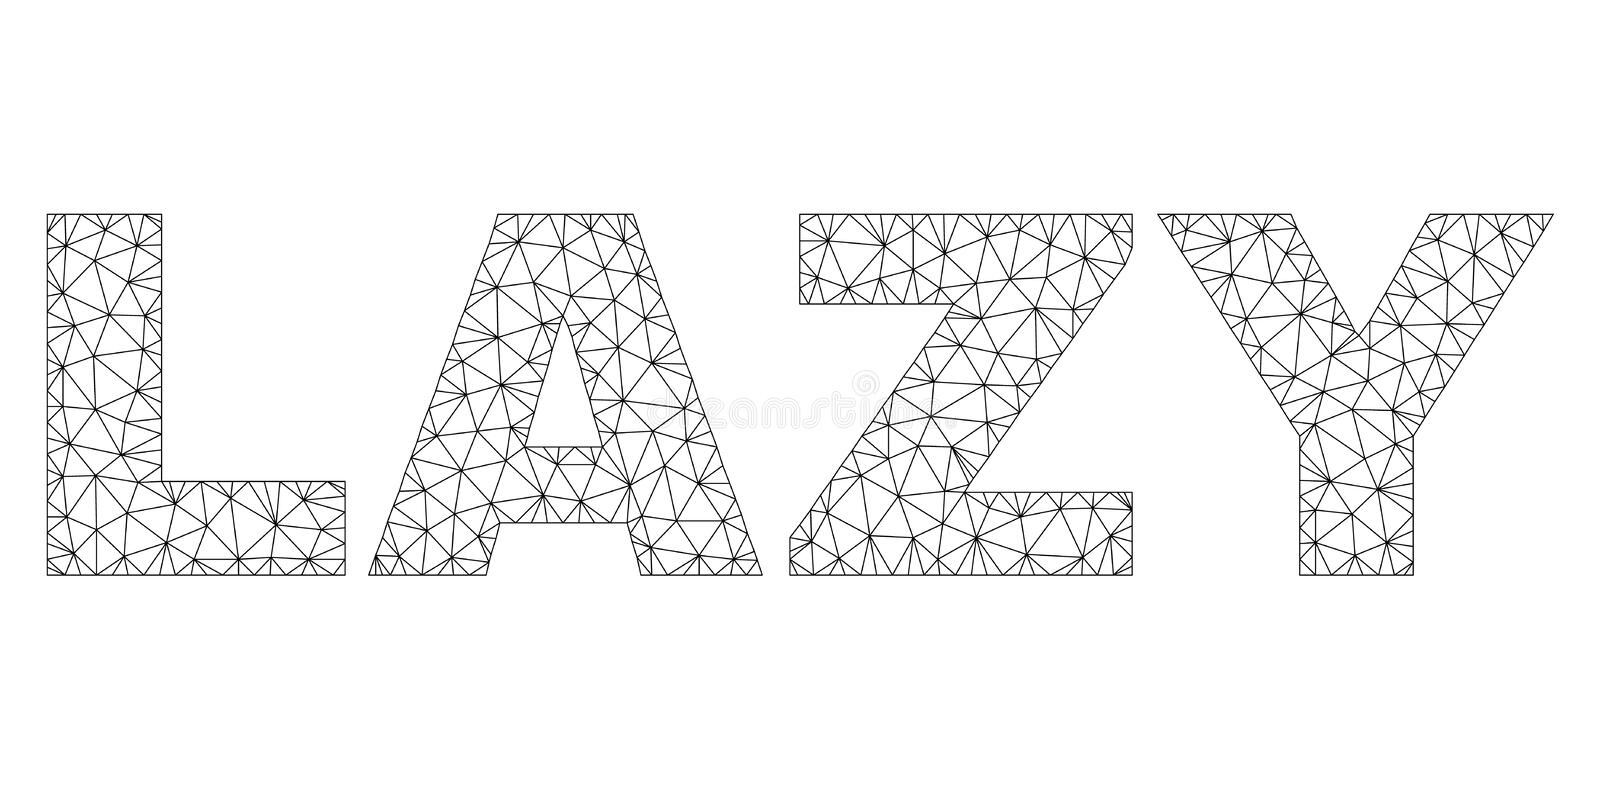 Polygonal Carcass LAZY Text Tag. Mesh vector LAZY text. Abstract lines and points are organized into LAZY black carcass symbols. Linear carcass 2D triangular stock illustration